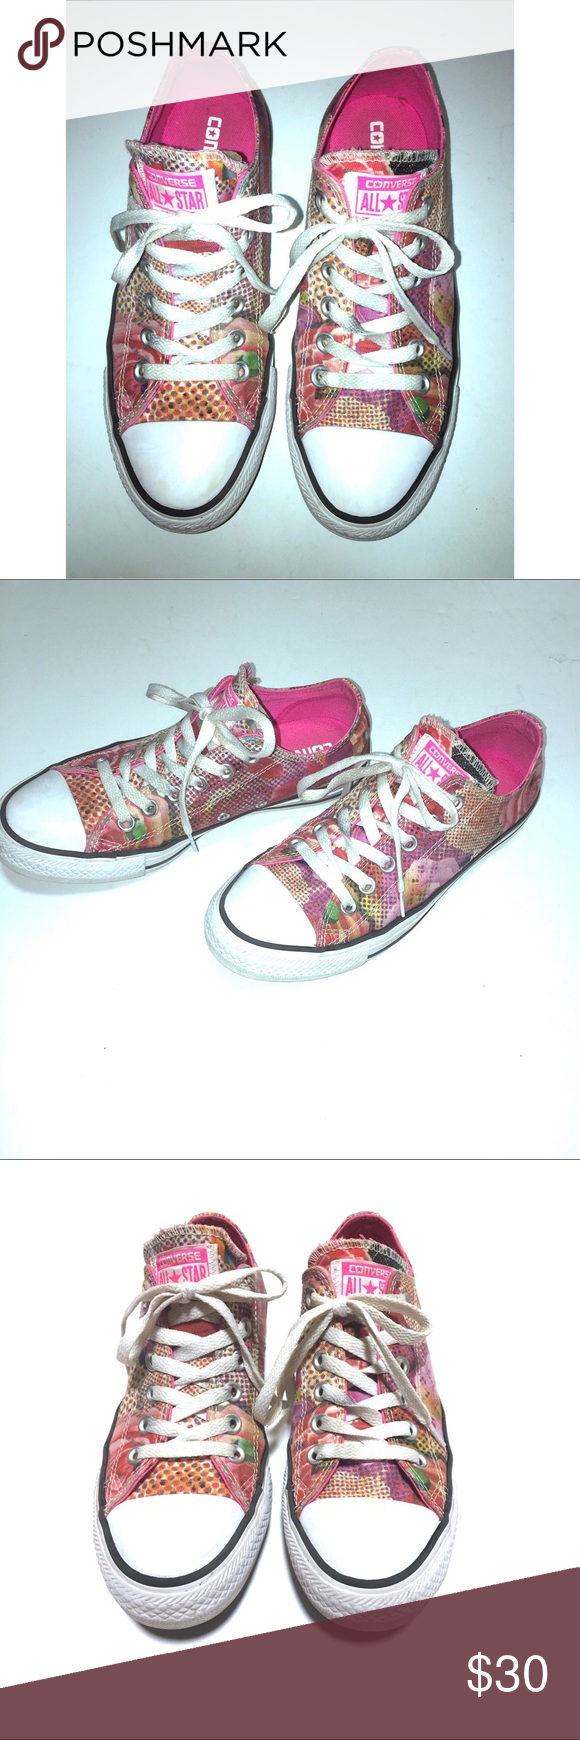 ad93279bfea1 Converse Chuck Taylor All Star Floral Sneakers Sz7 Converse Chuck Taylor  All Star Sneakers. •